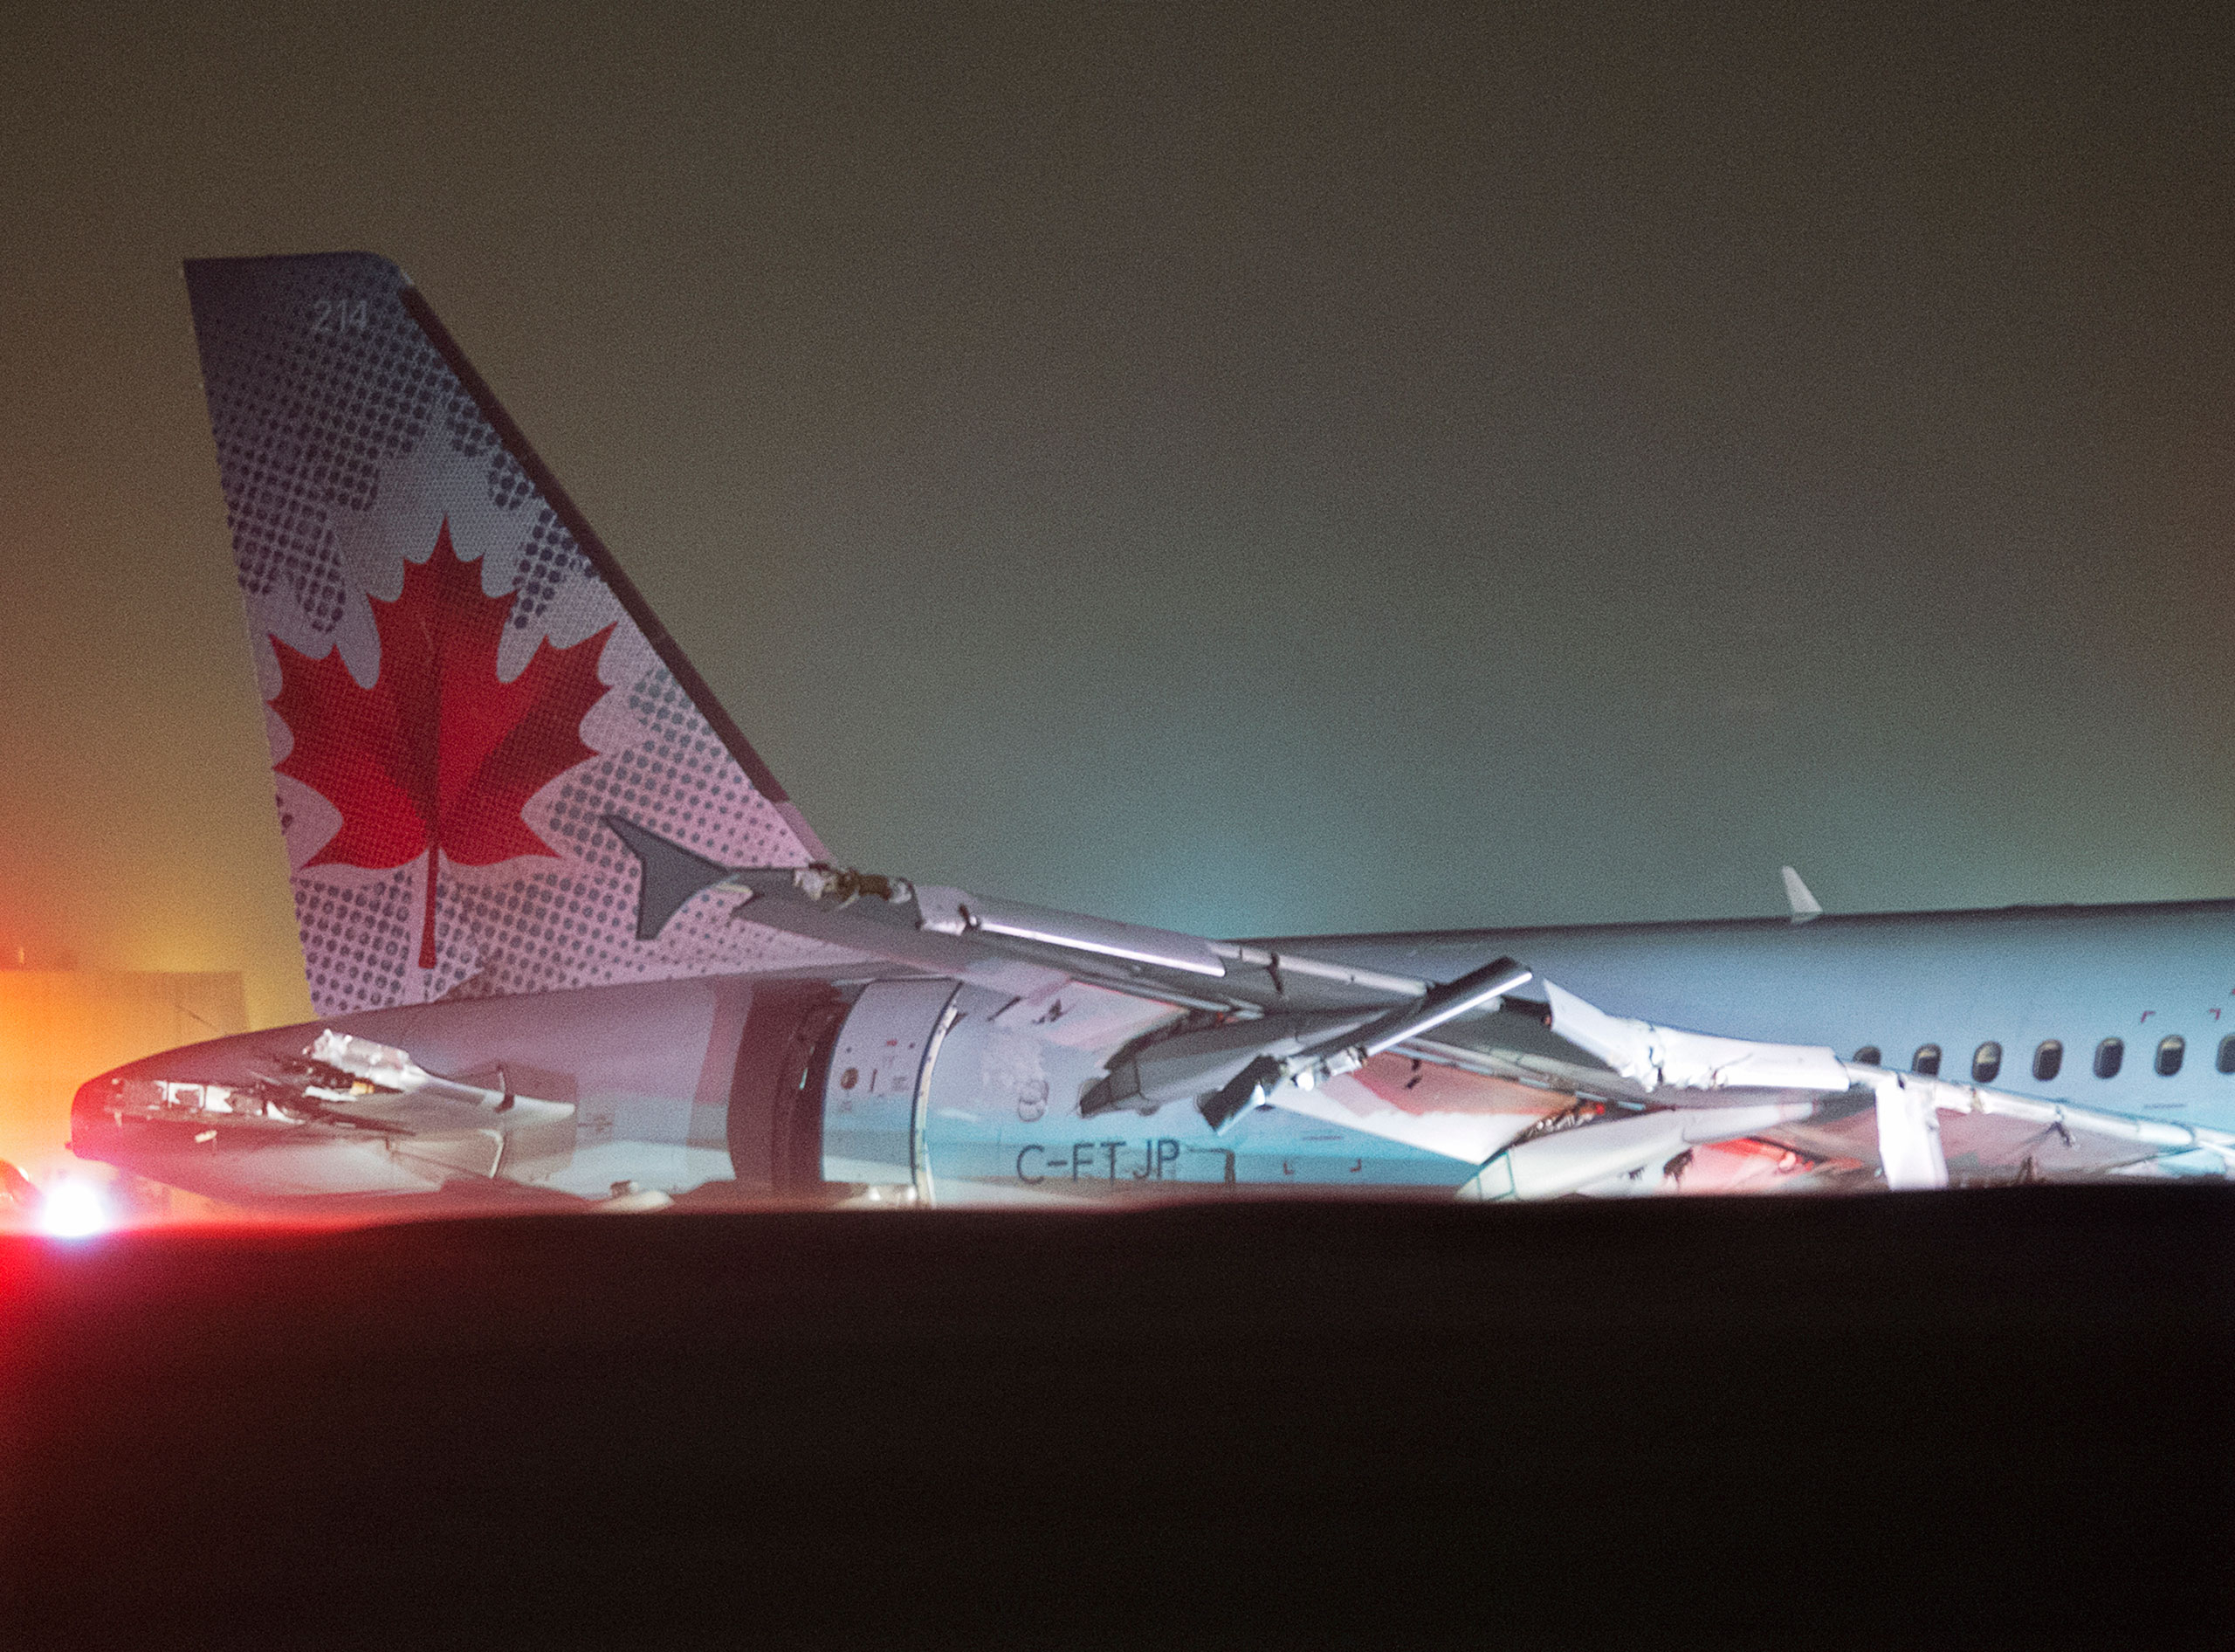 Air Canada flight 624 rests off the runway after landing at Stanfield International Airport in Halifax, Canada on, March. 29, 2015.